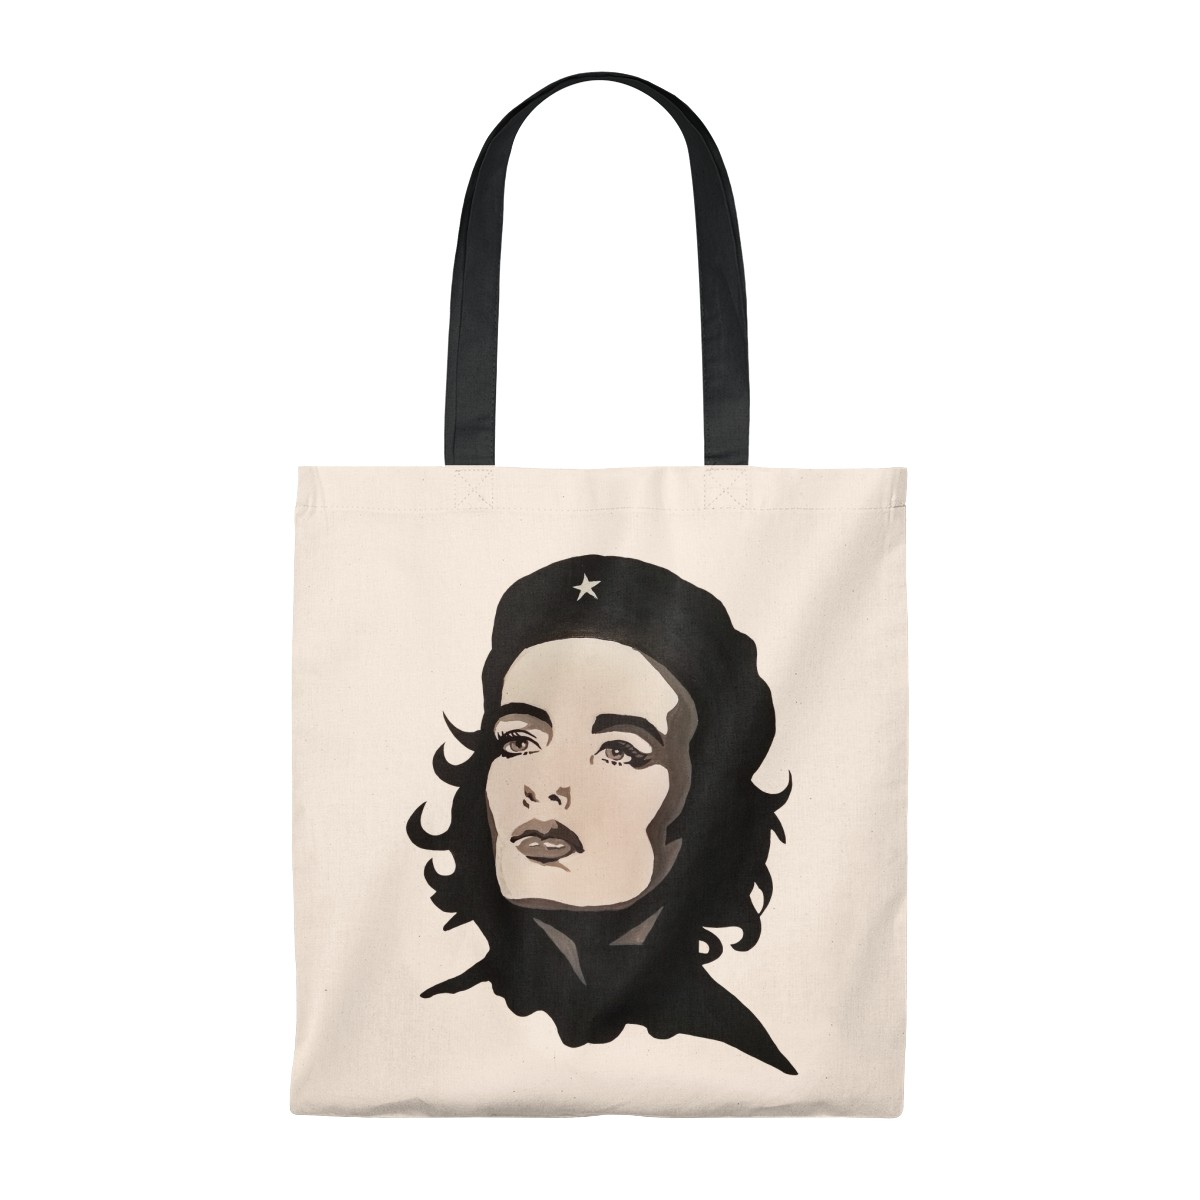 Girl Power Women/'s Movement Gift For Her Feminist Tote Mood Tote Bag Women/'s March Women/'s Rights Nasty Woman Resist